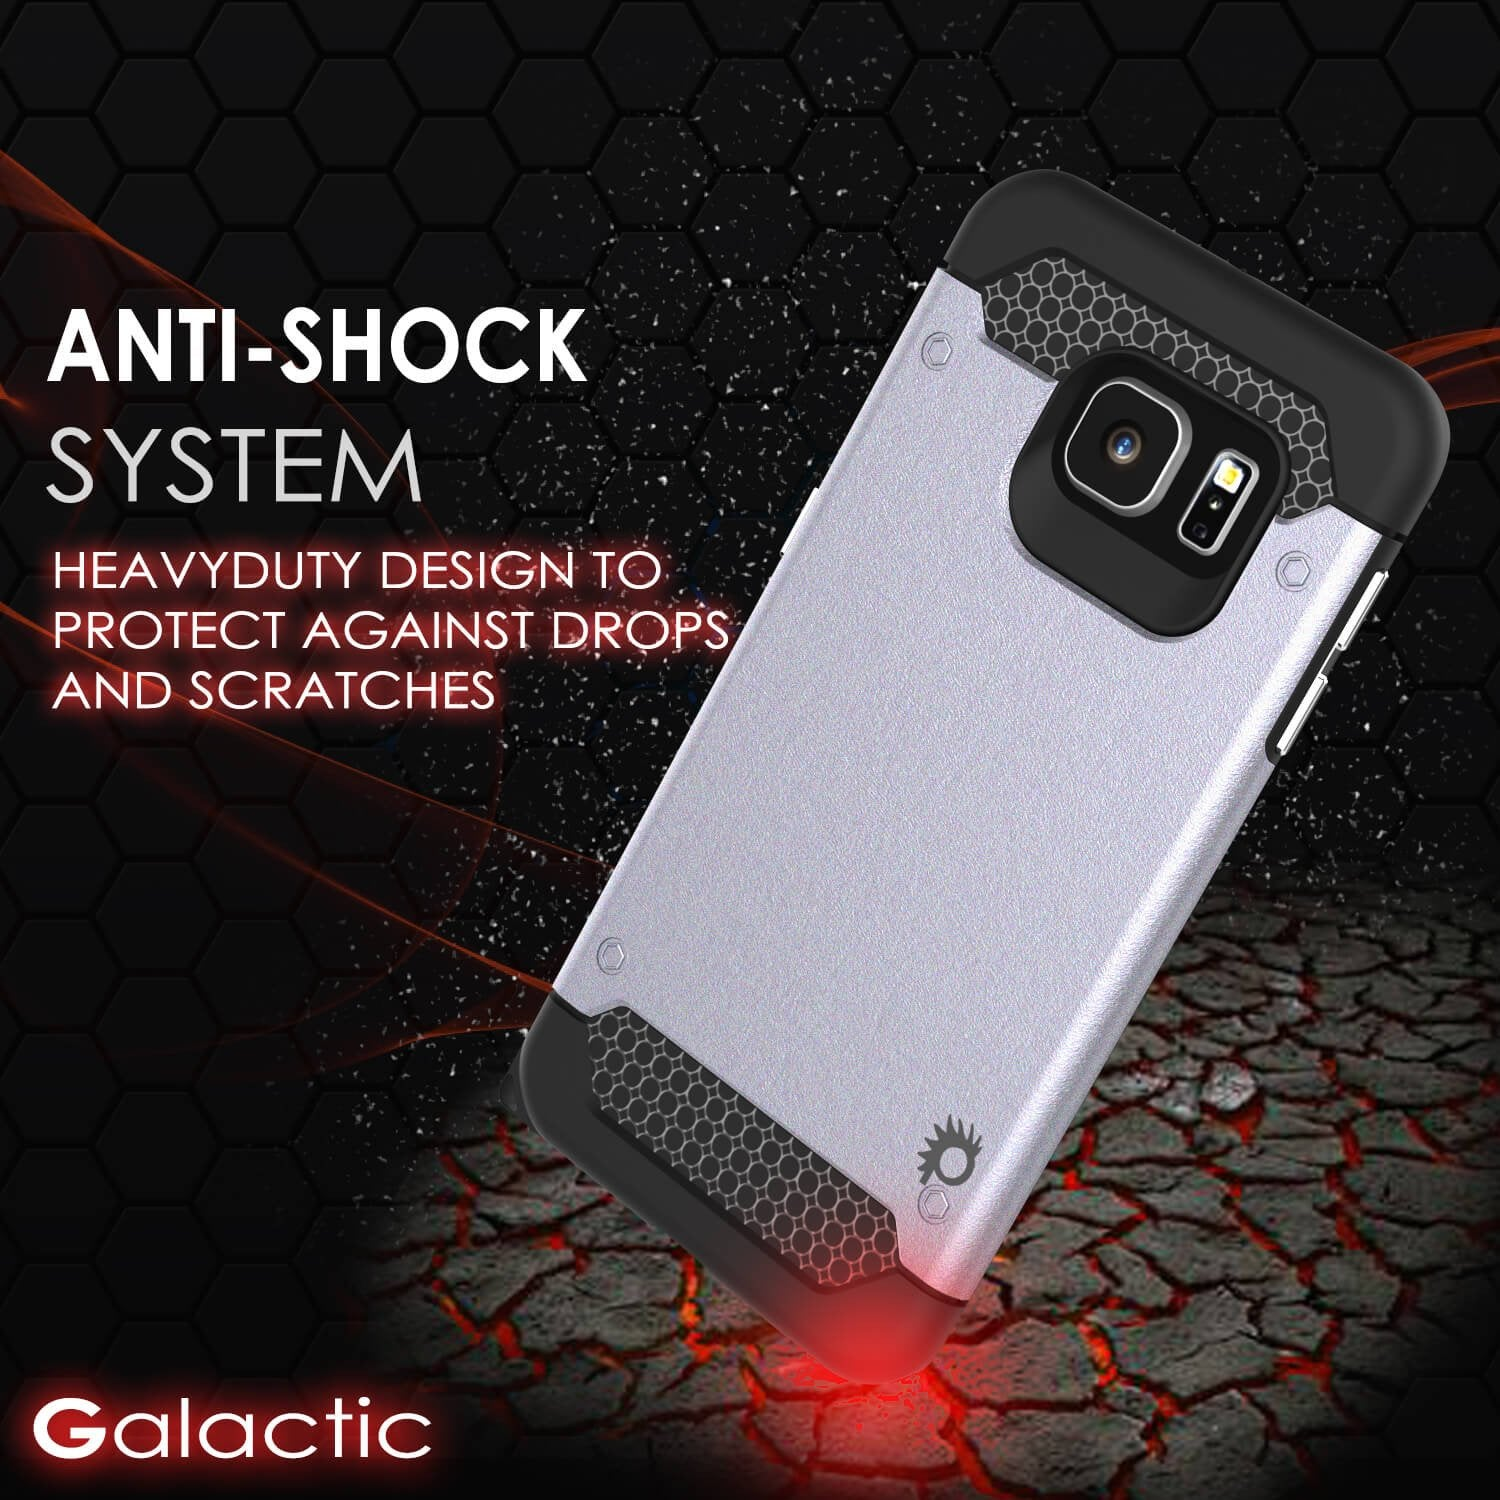 Galaxy s6 EDGE Plus Case PunkCase Galactic SIlver Series Slim Armor Soft Cover w/ Screen Protector